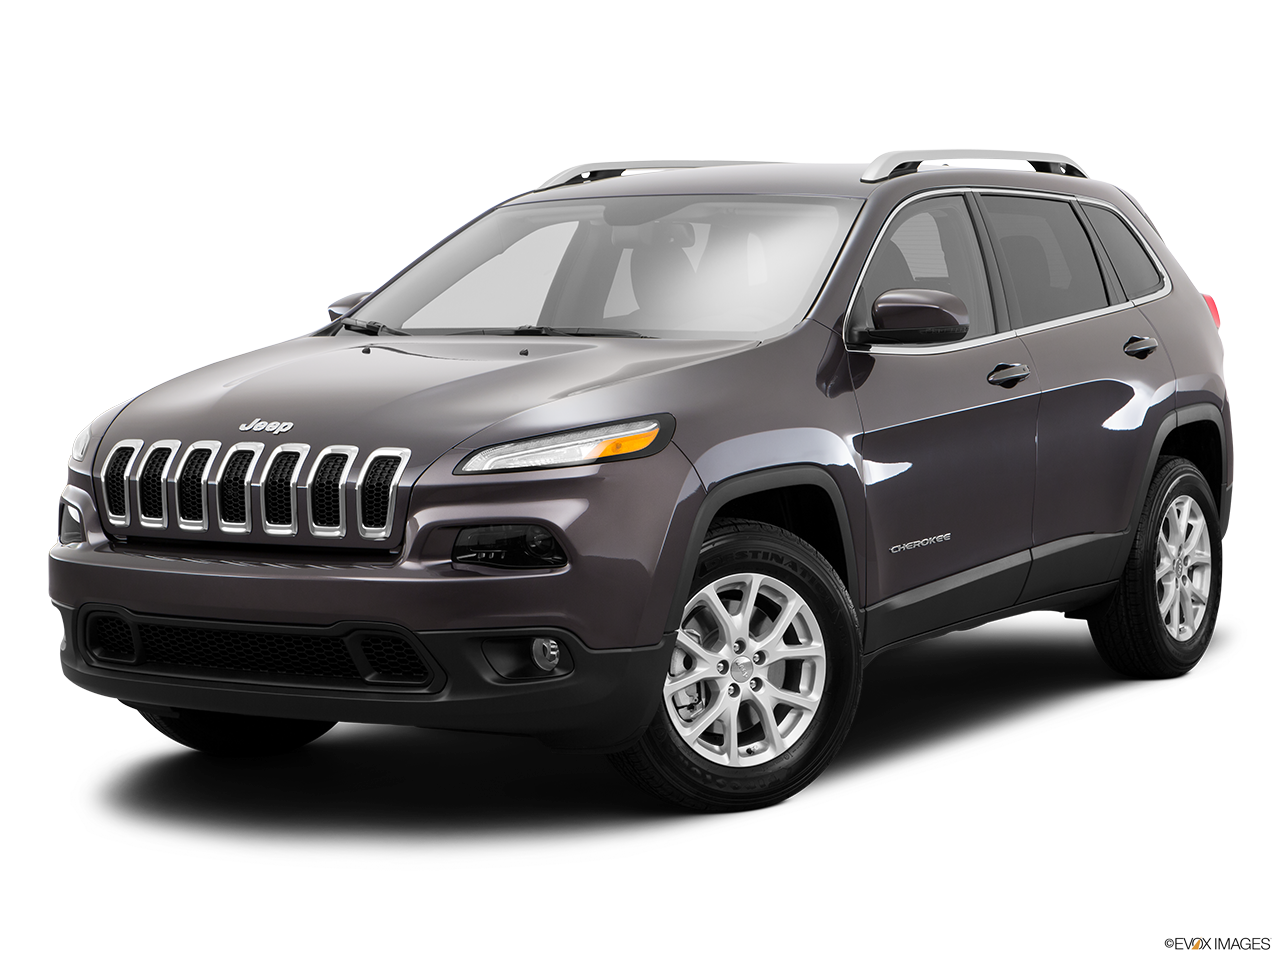 2016 jeep cherokee treasure coast arrigo ft pierce. Black Bedroom Furniture Sets. Home Design Ideas